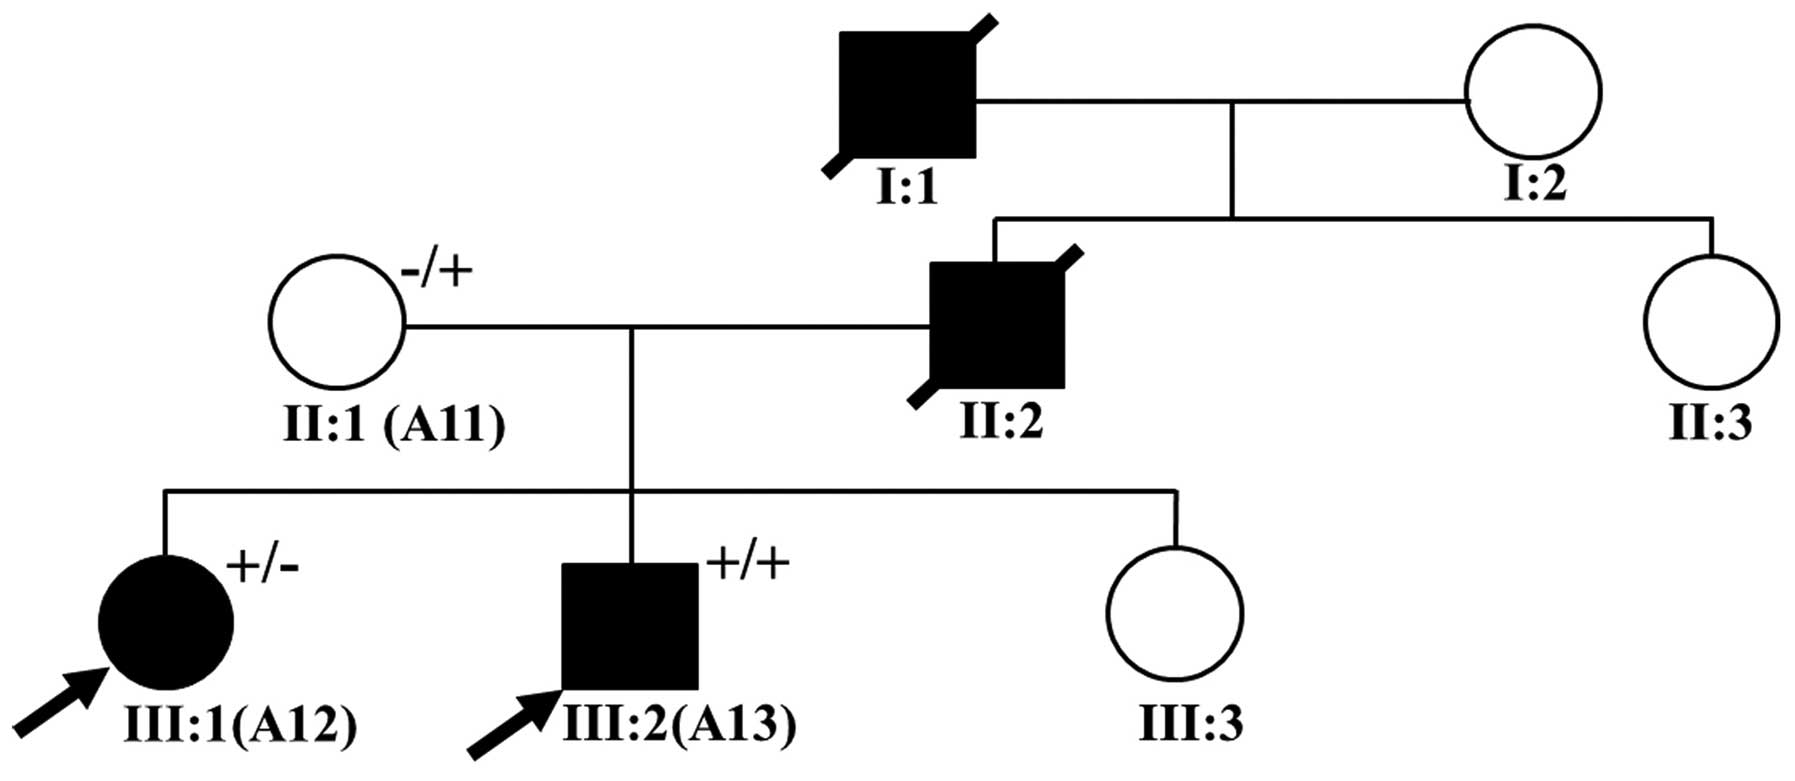 Identification Of Novel Mutations Including A Double Mutation In